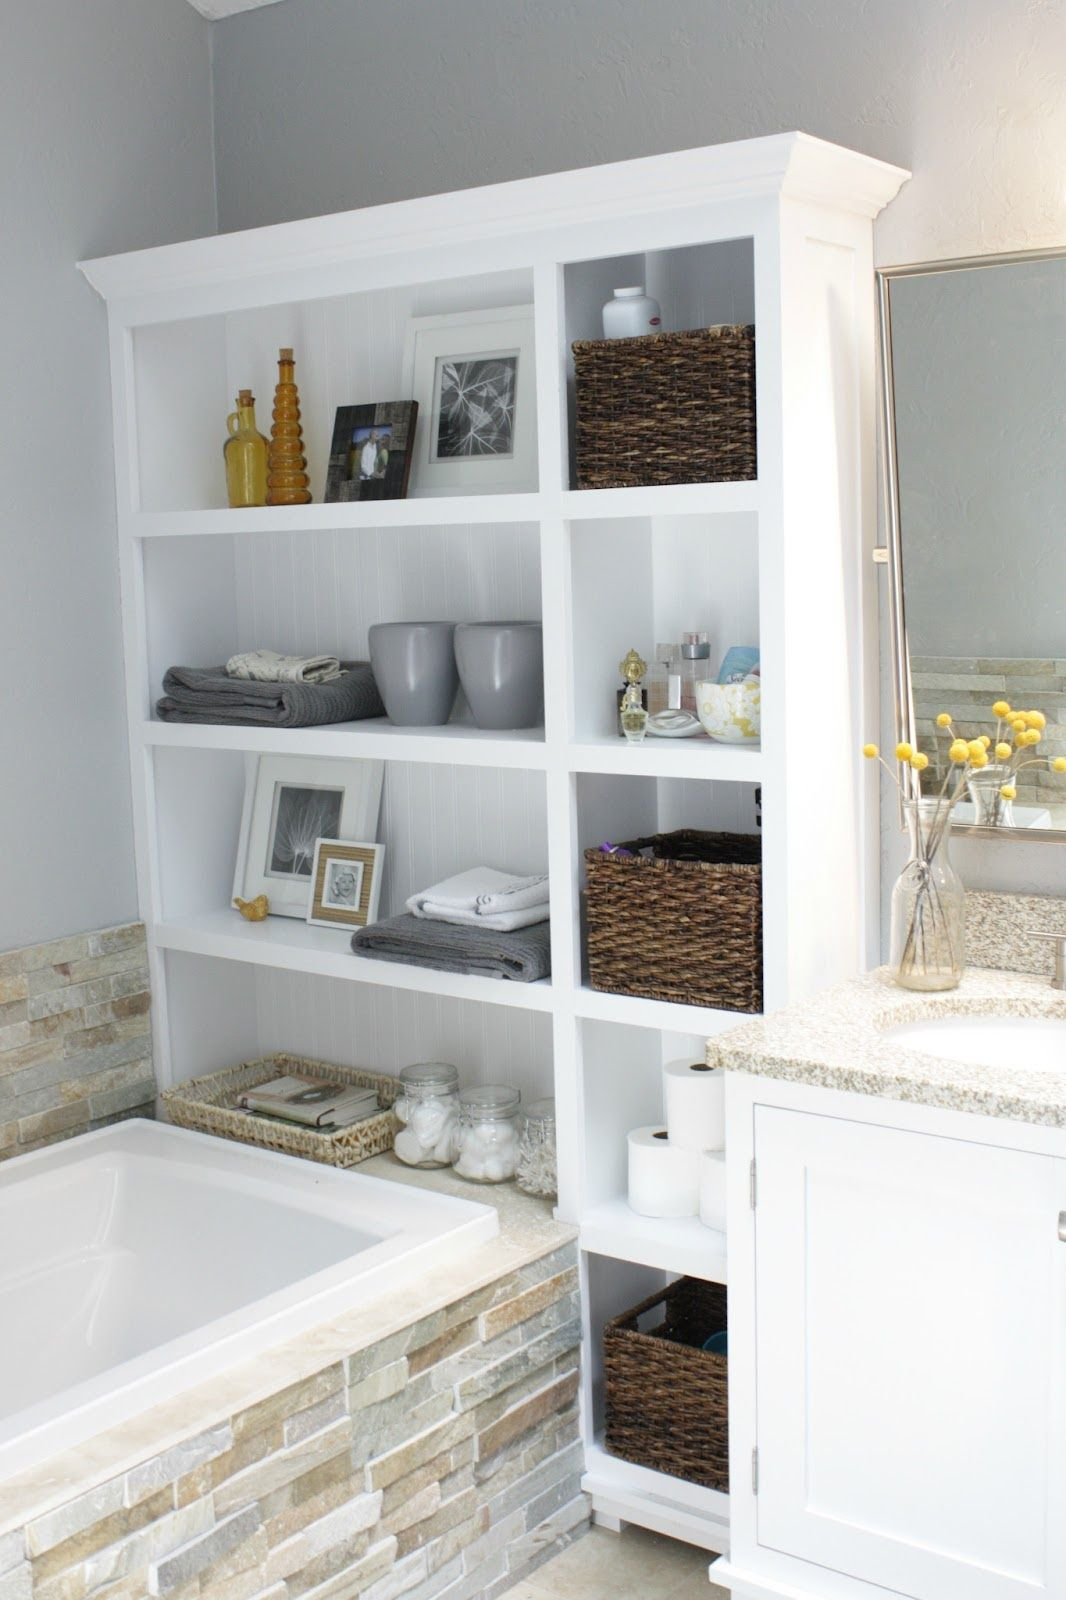 Built in bathroom storage ideas - 1000 Images About Bathroom On Pinterest Small Bathrooms Tubs And Bath